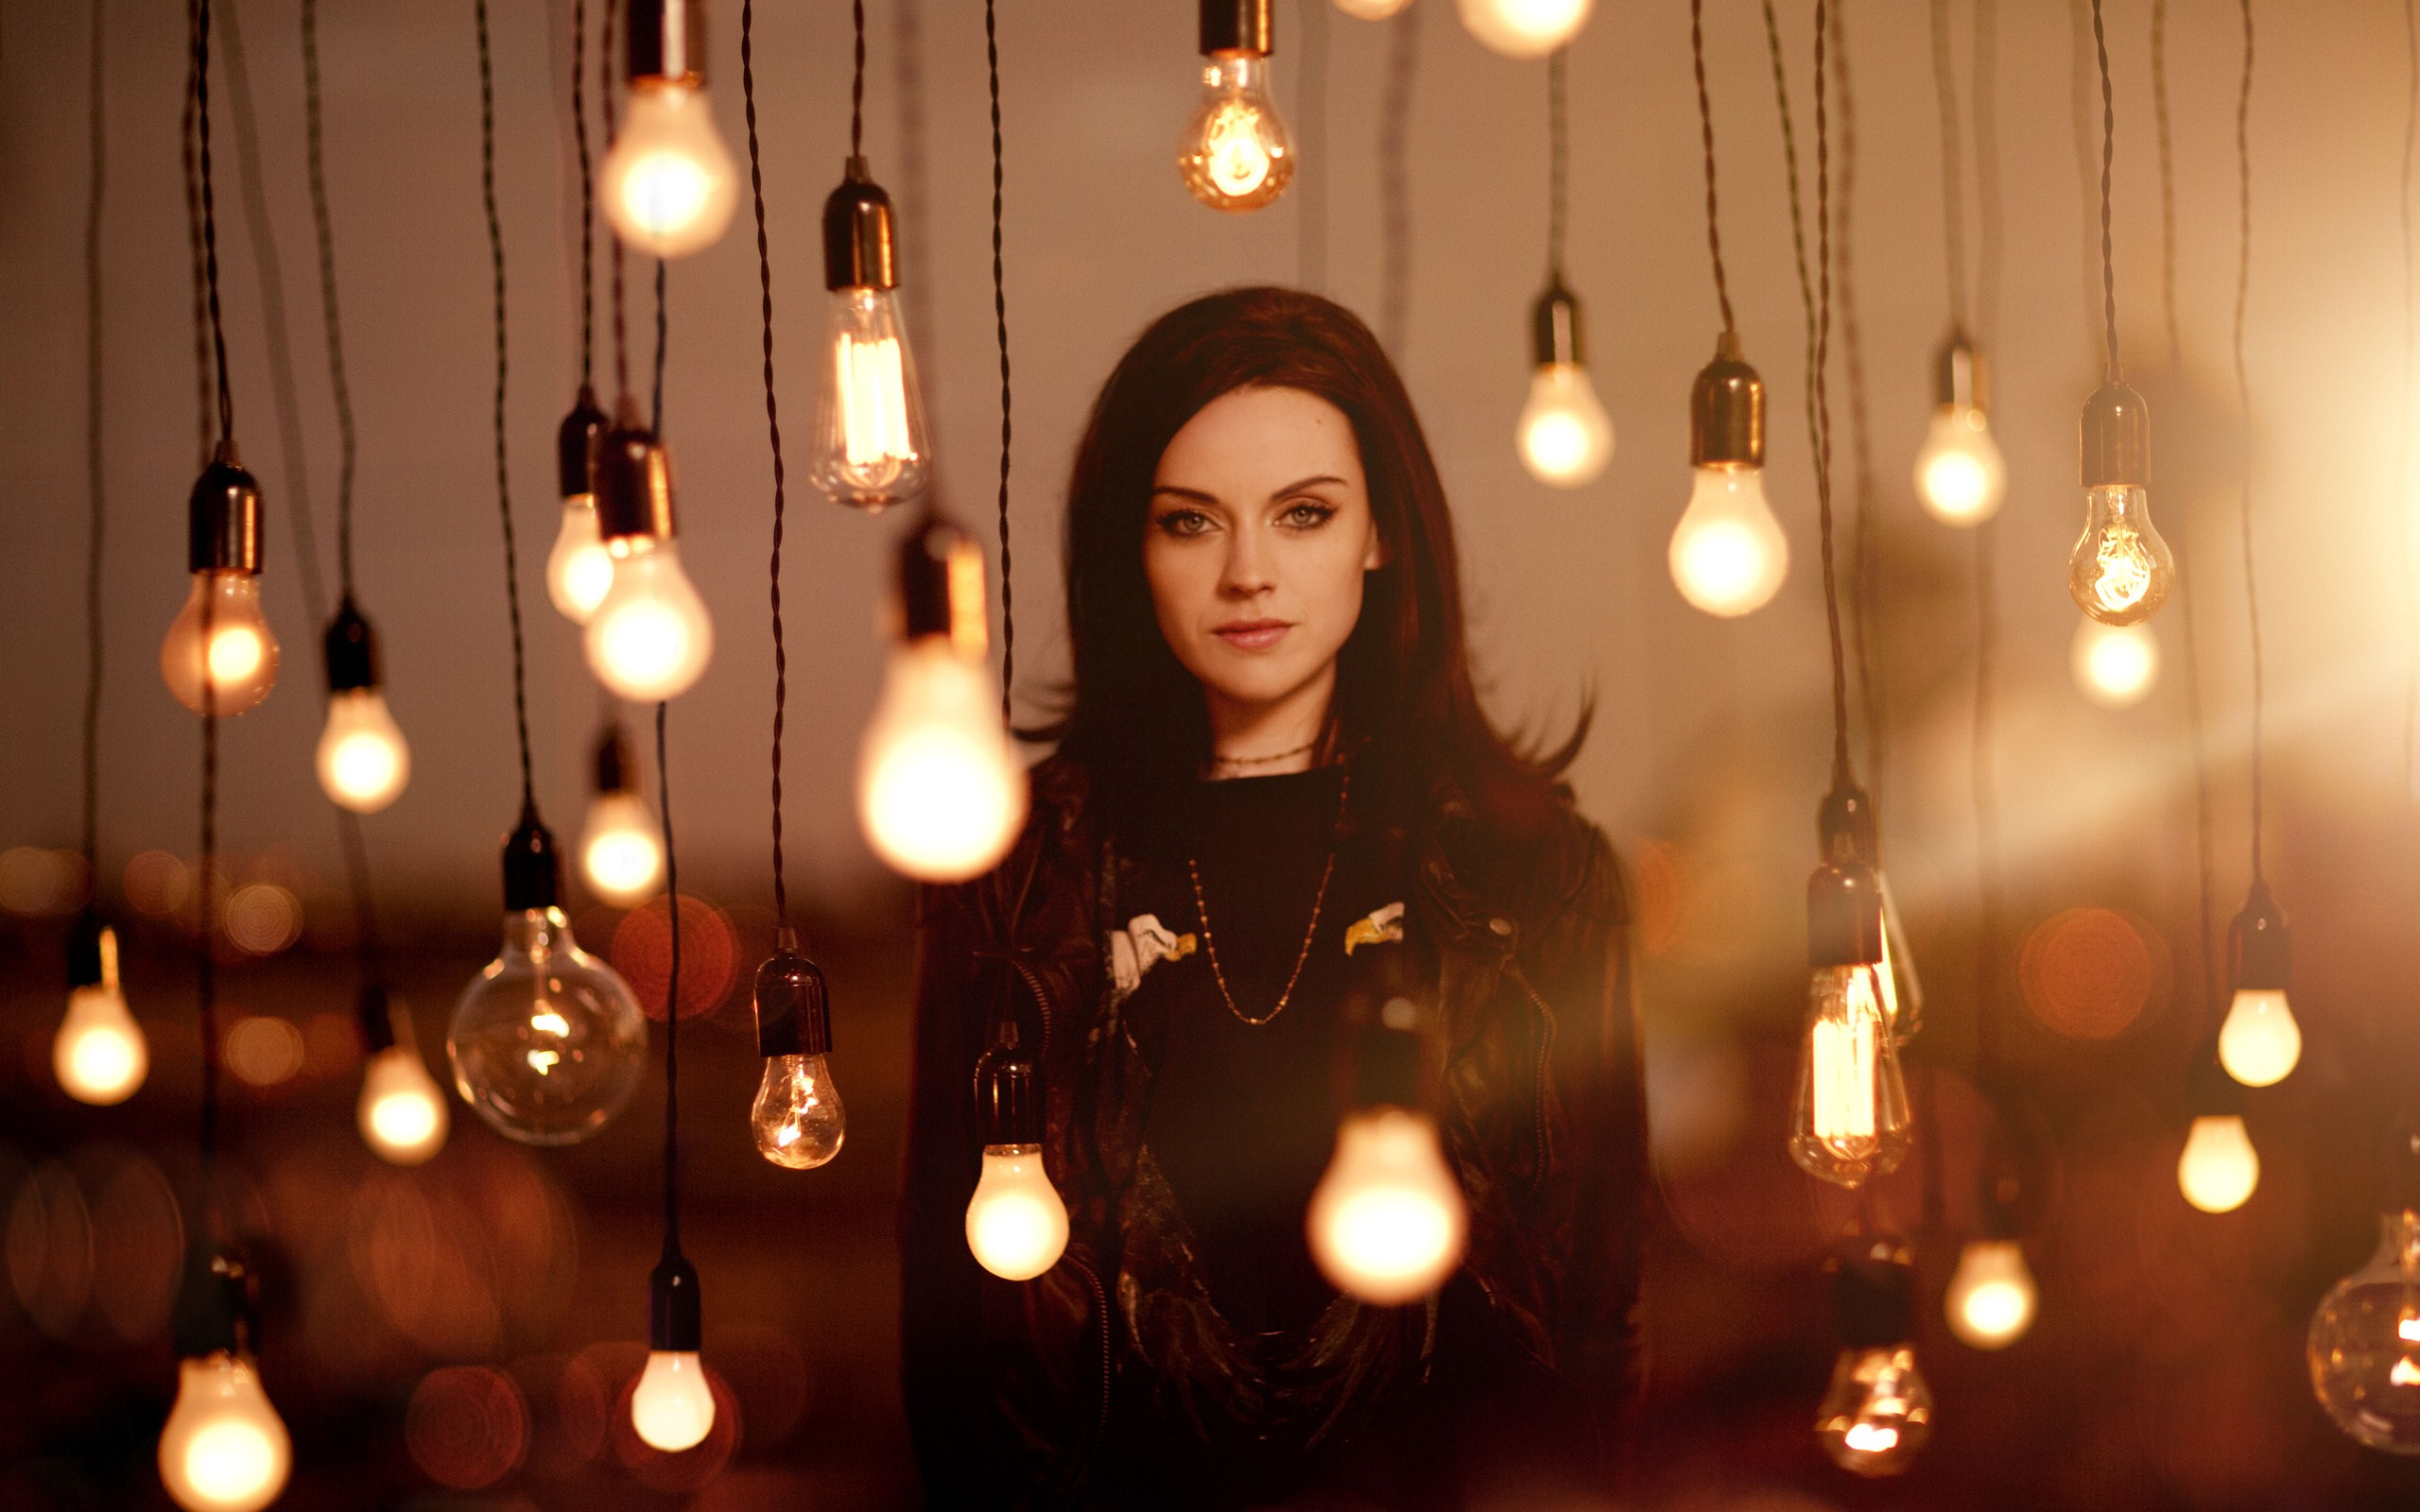 amy macdonald wallpaper hd 36093